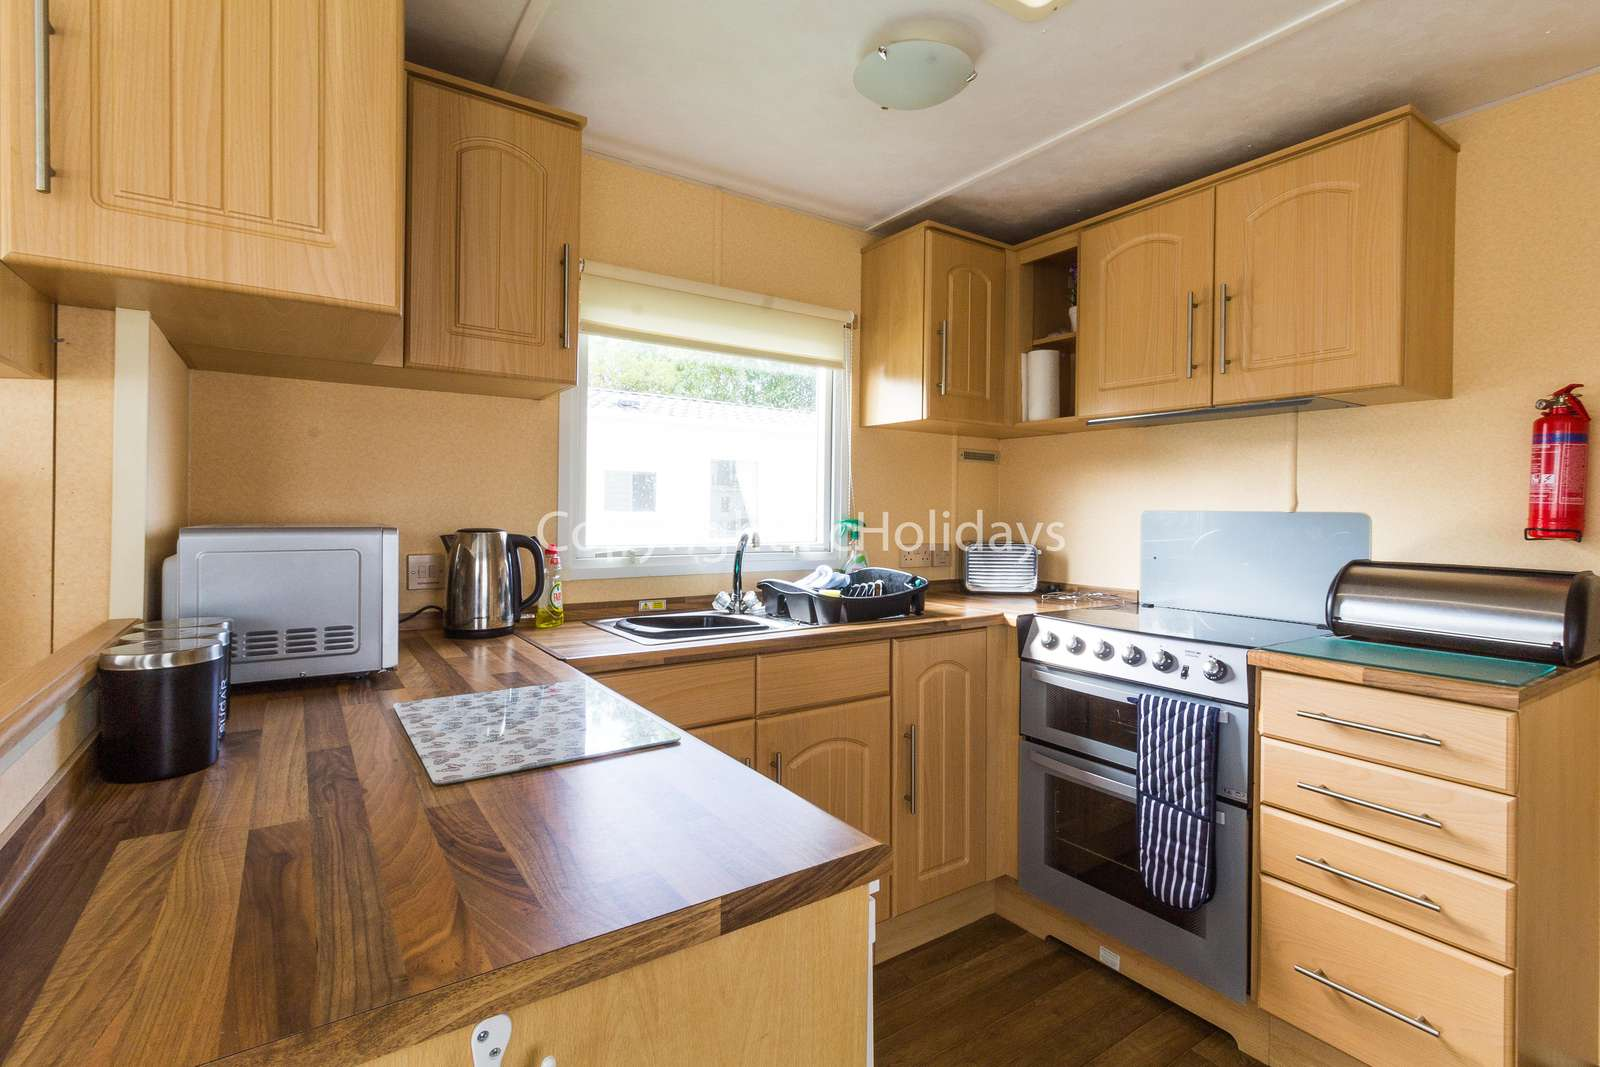 Modern and fully equipped kitchen, ideal for self-catering breaks